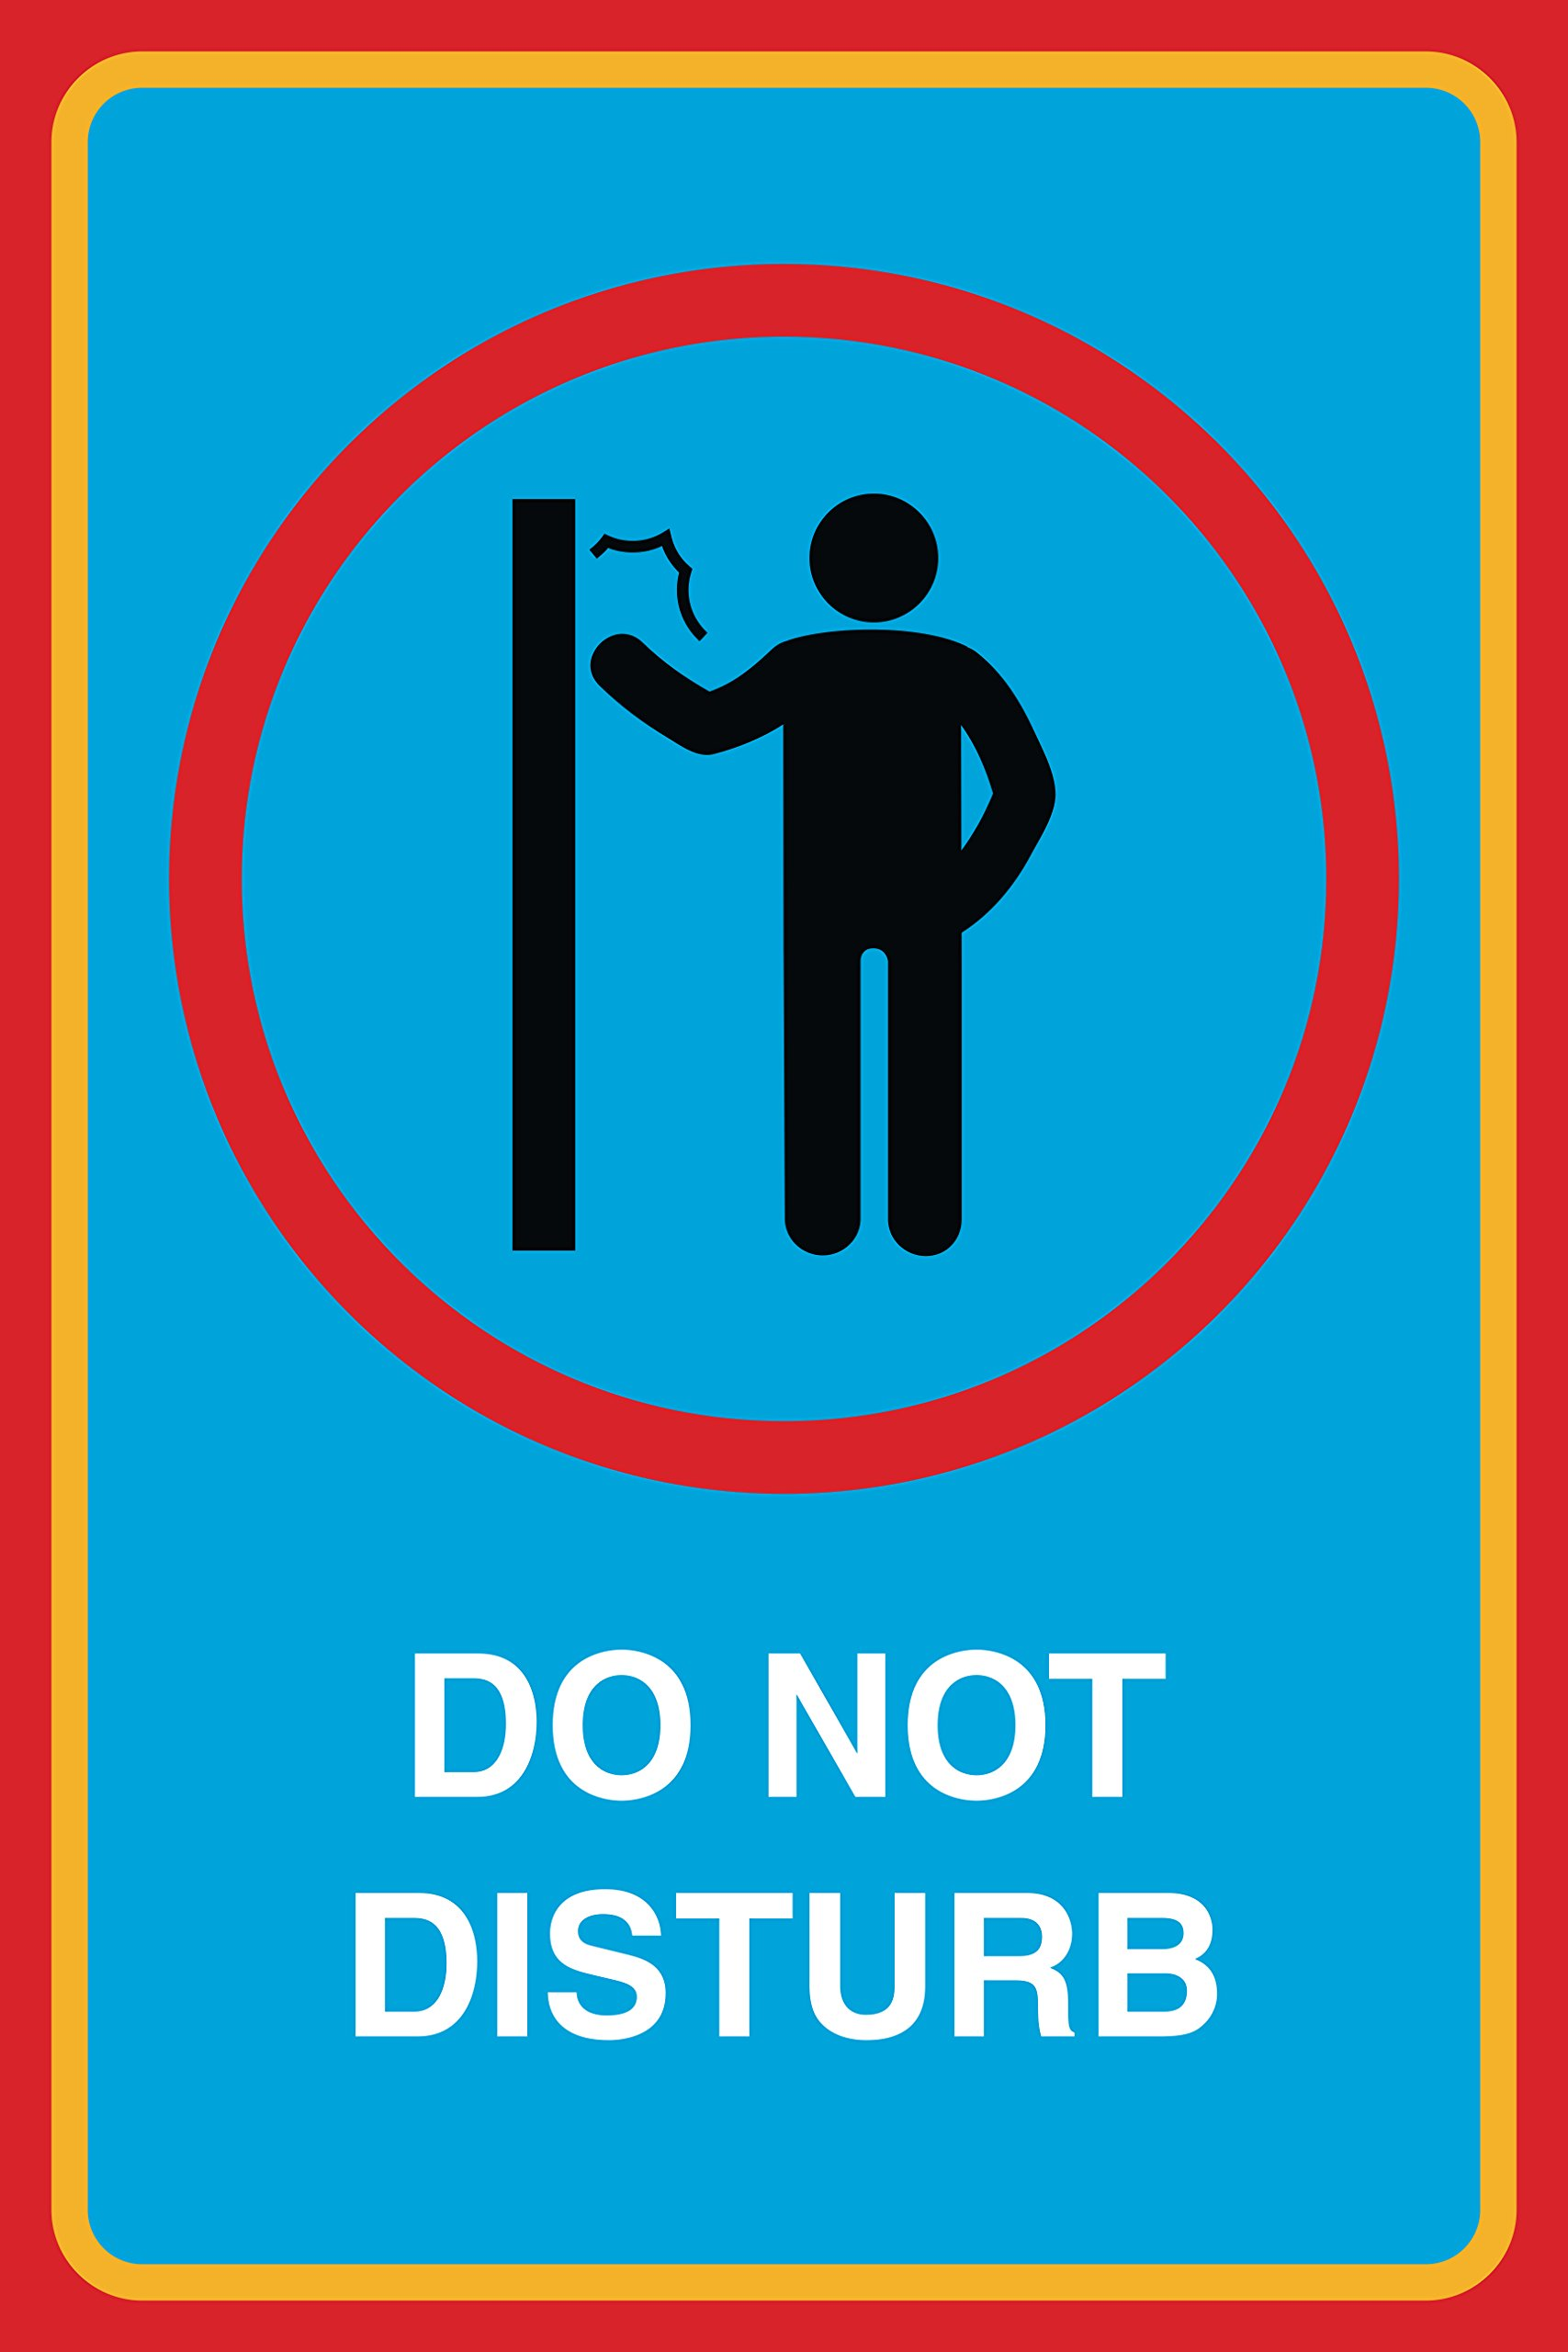 Do Not Disturb Print No Knocking On Door Man Picture Notice Office Business Sign Aluminum Metal by iCandy Combat (Image #1)